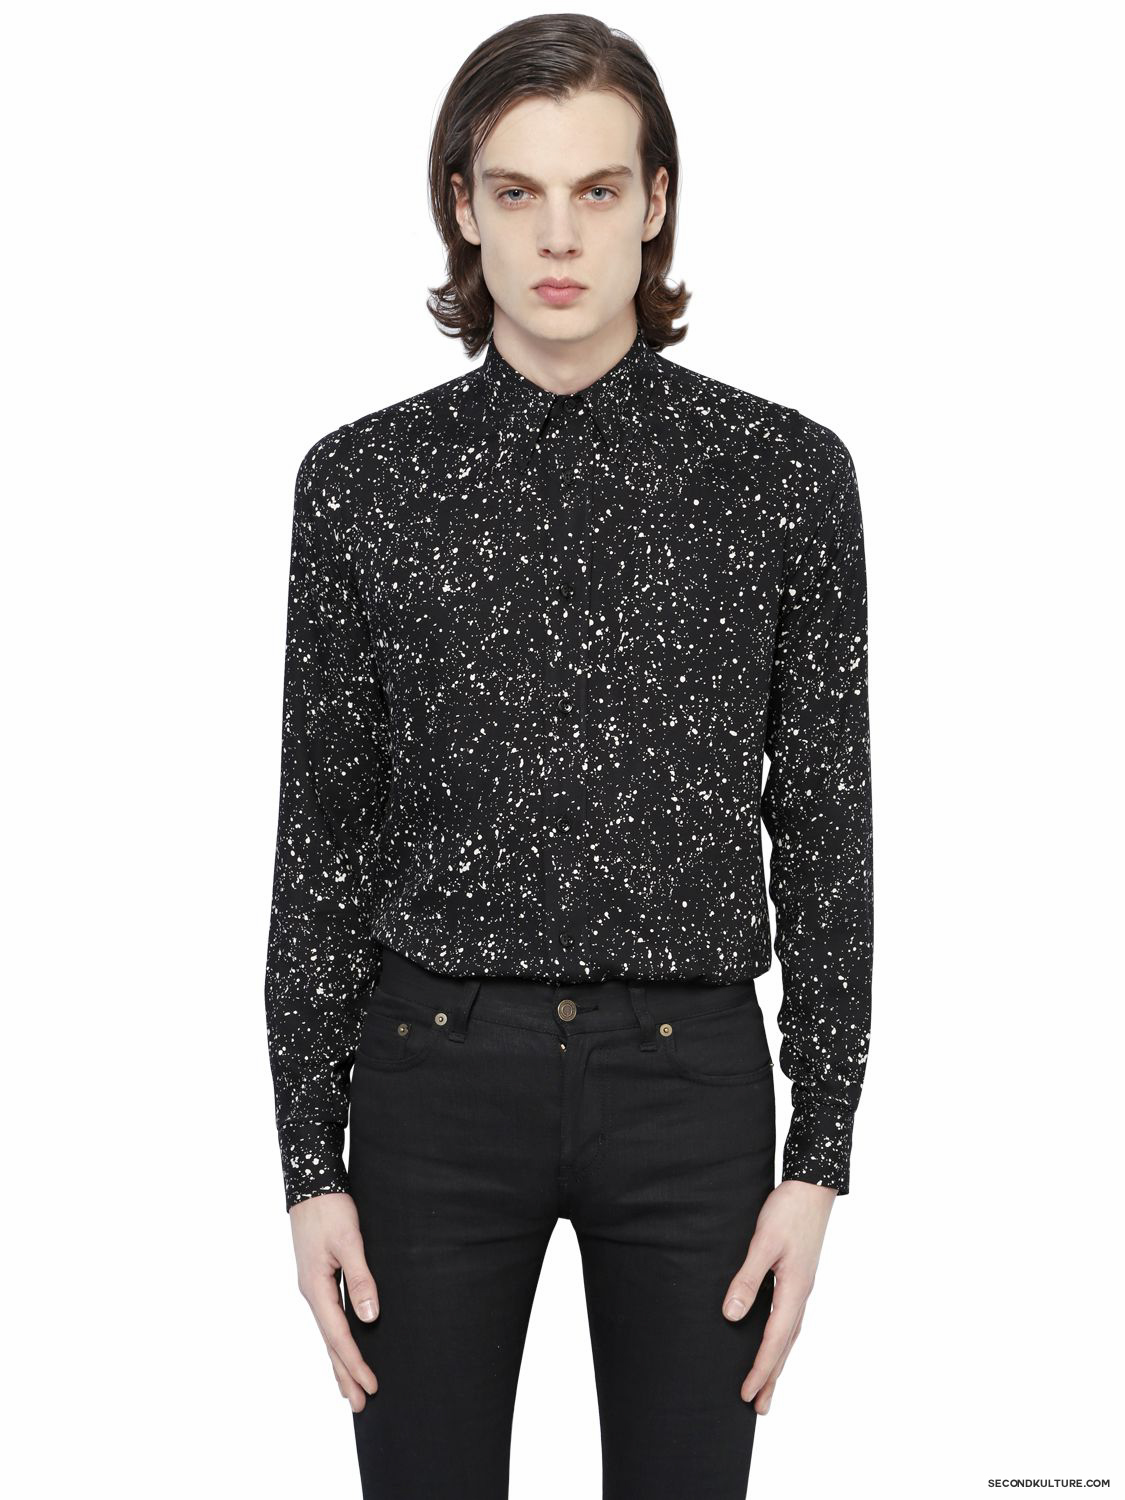 Saint-Laurent-Black-Micro-Confetti-Print-Light-Viscose-Twill-Shirt-Fall-Winter-2015-1